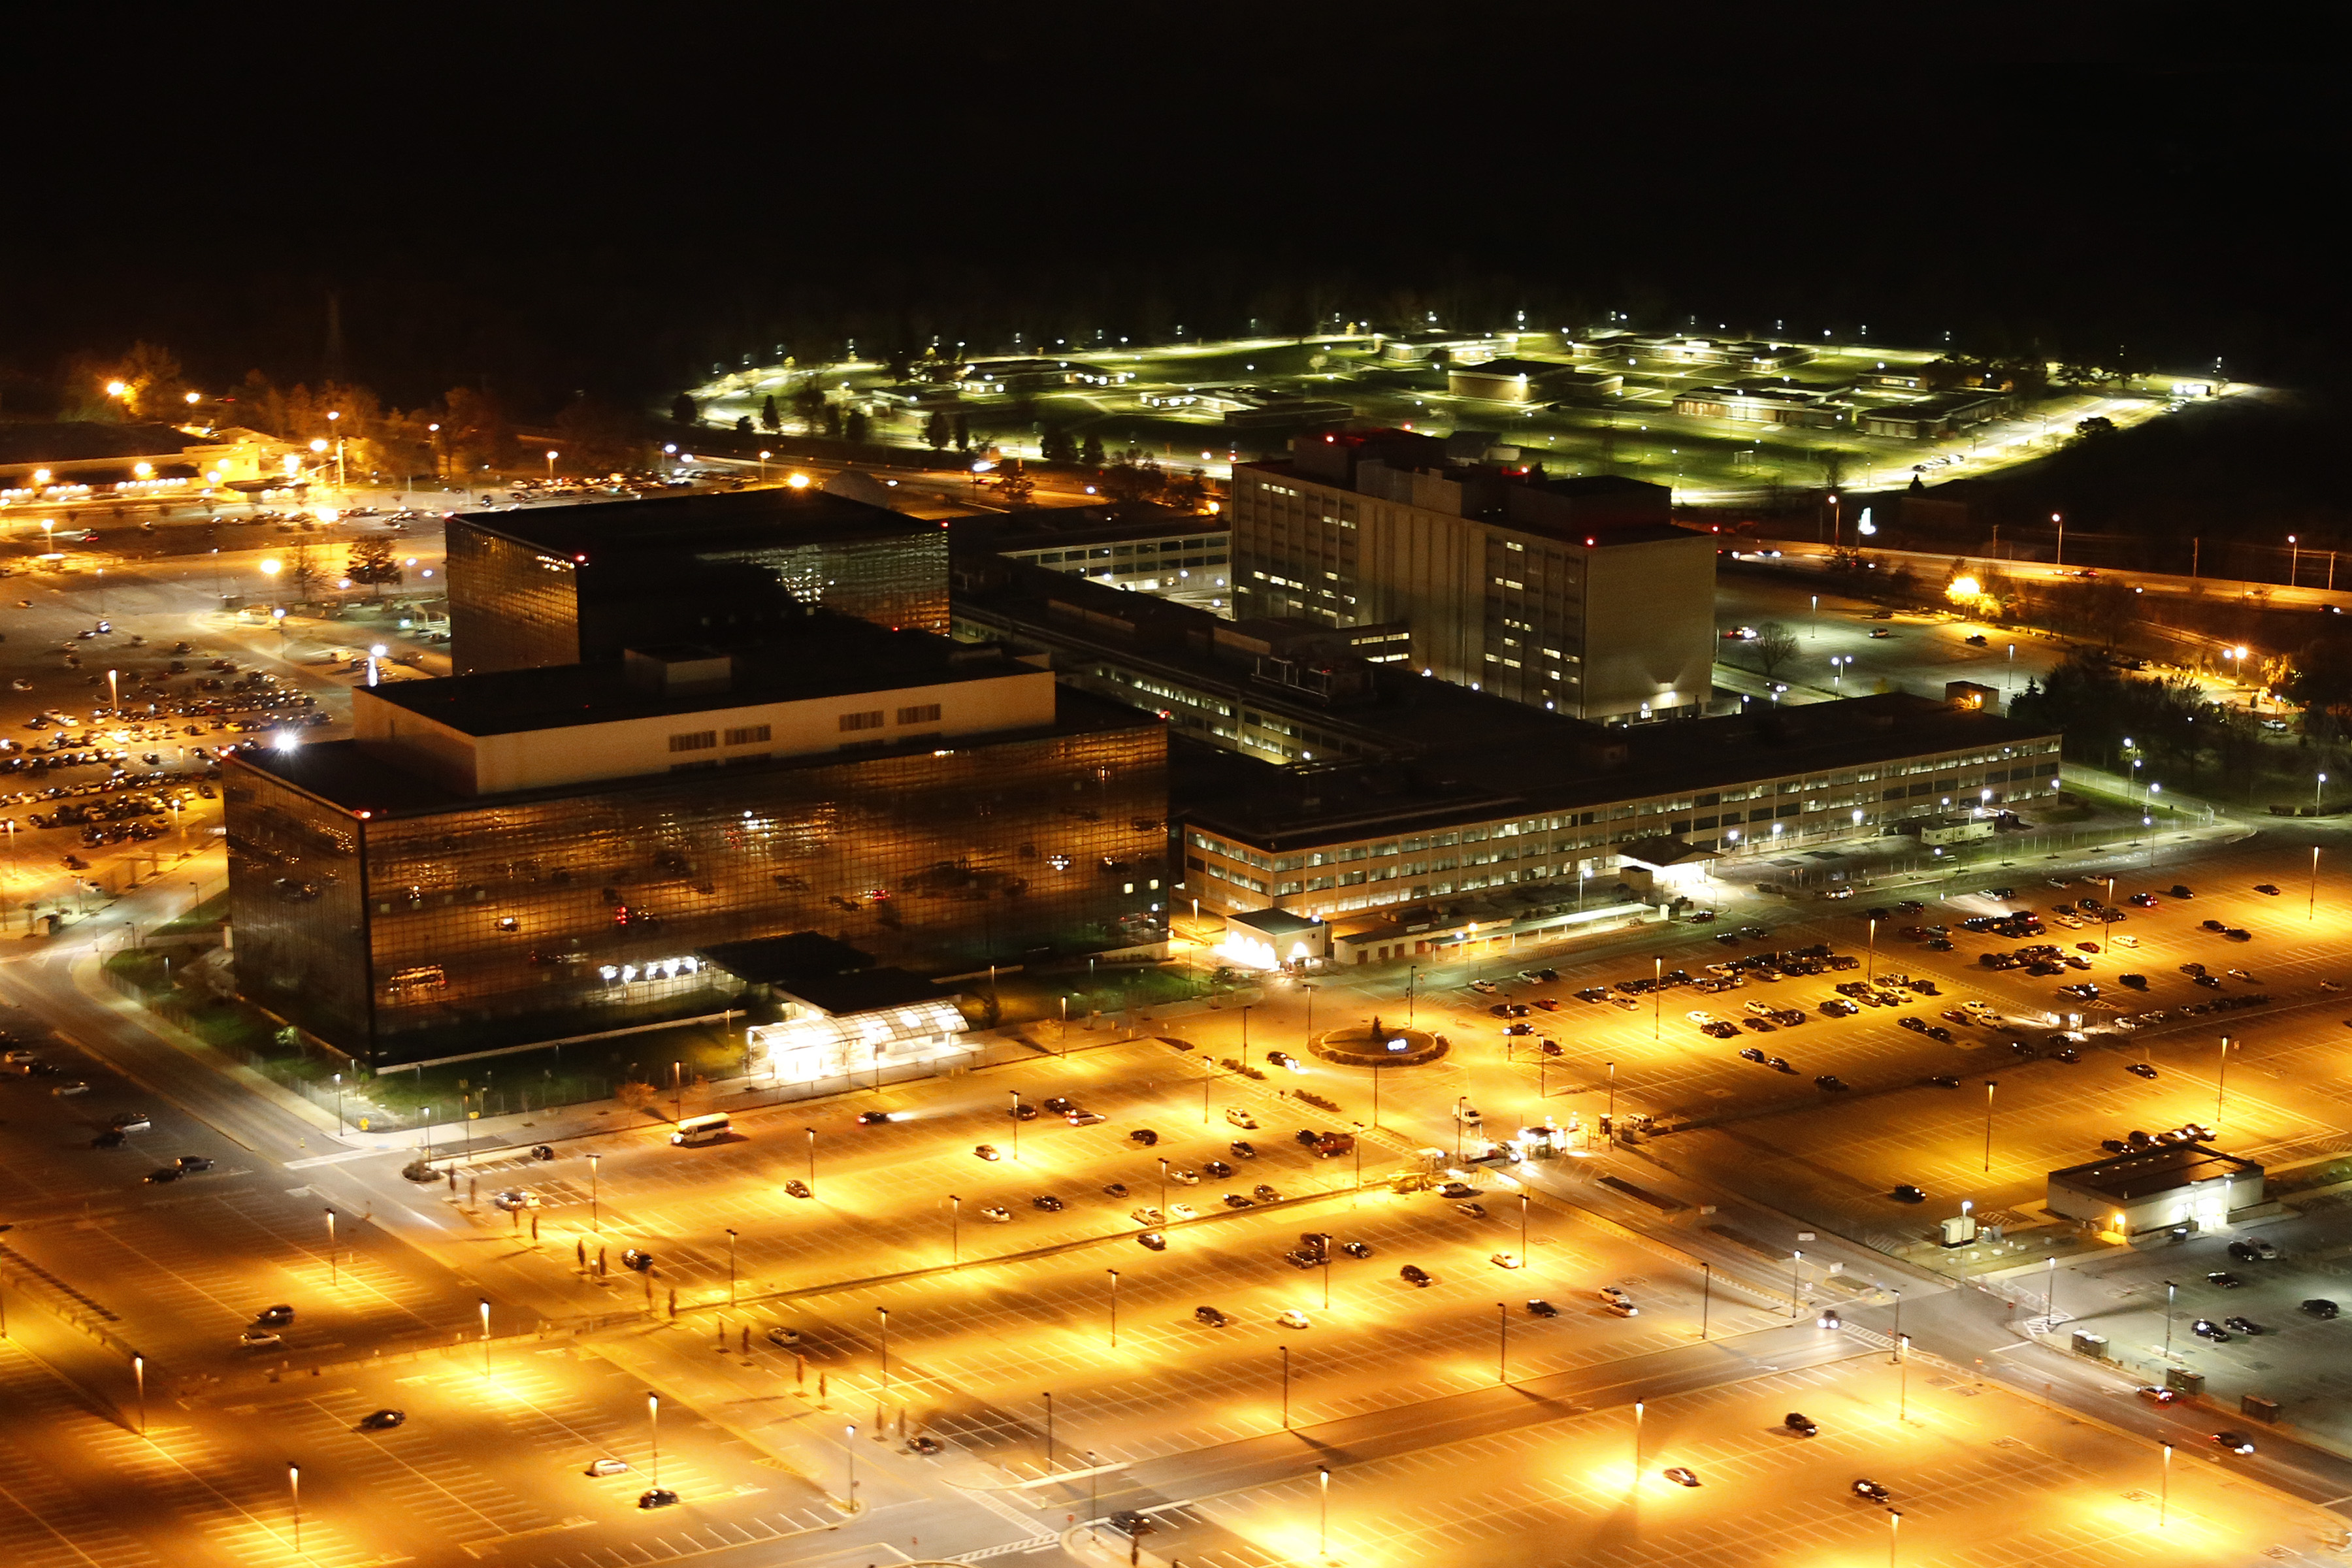 National Security Agency HQ Fort Meade